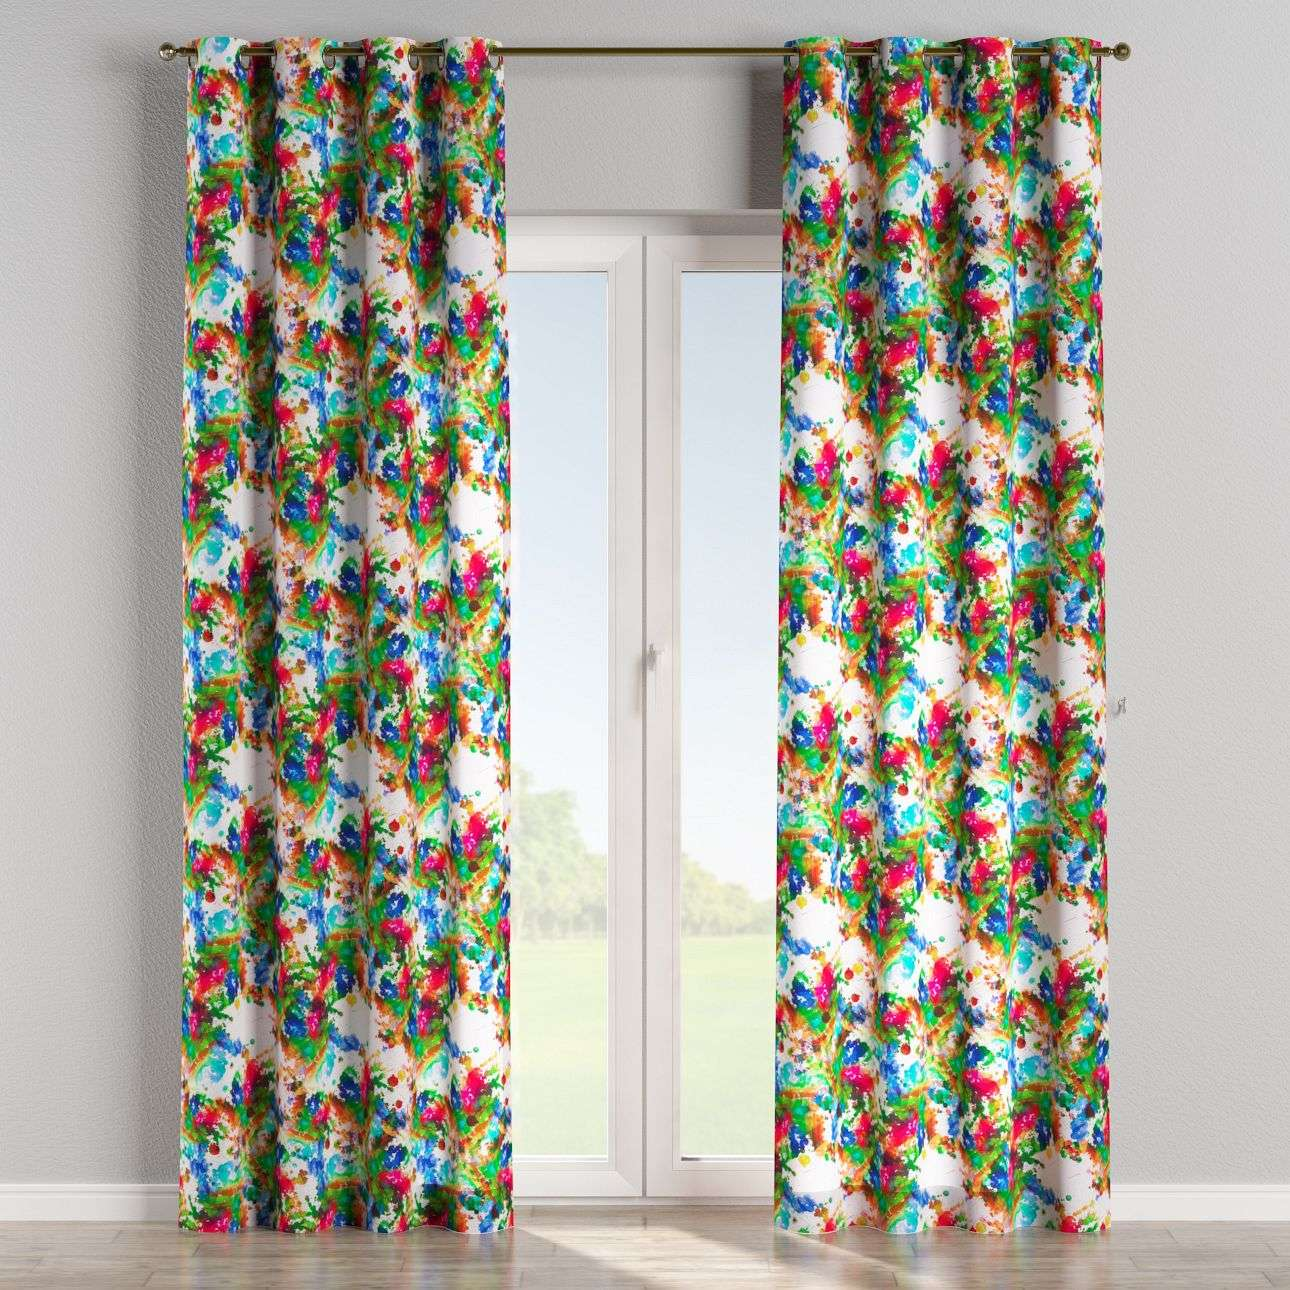 Eyelet curtains 130 x 260 cm (51 x 102 inch) in collection New Art, fabric: 140-23